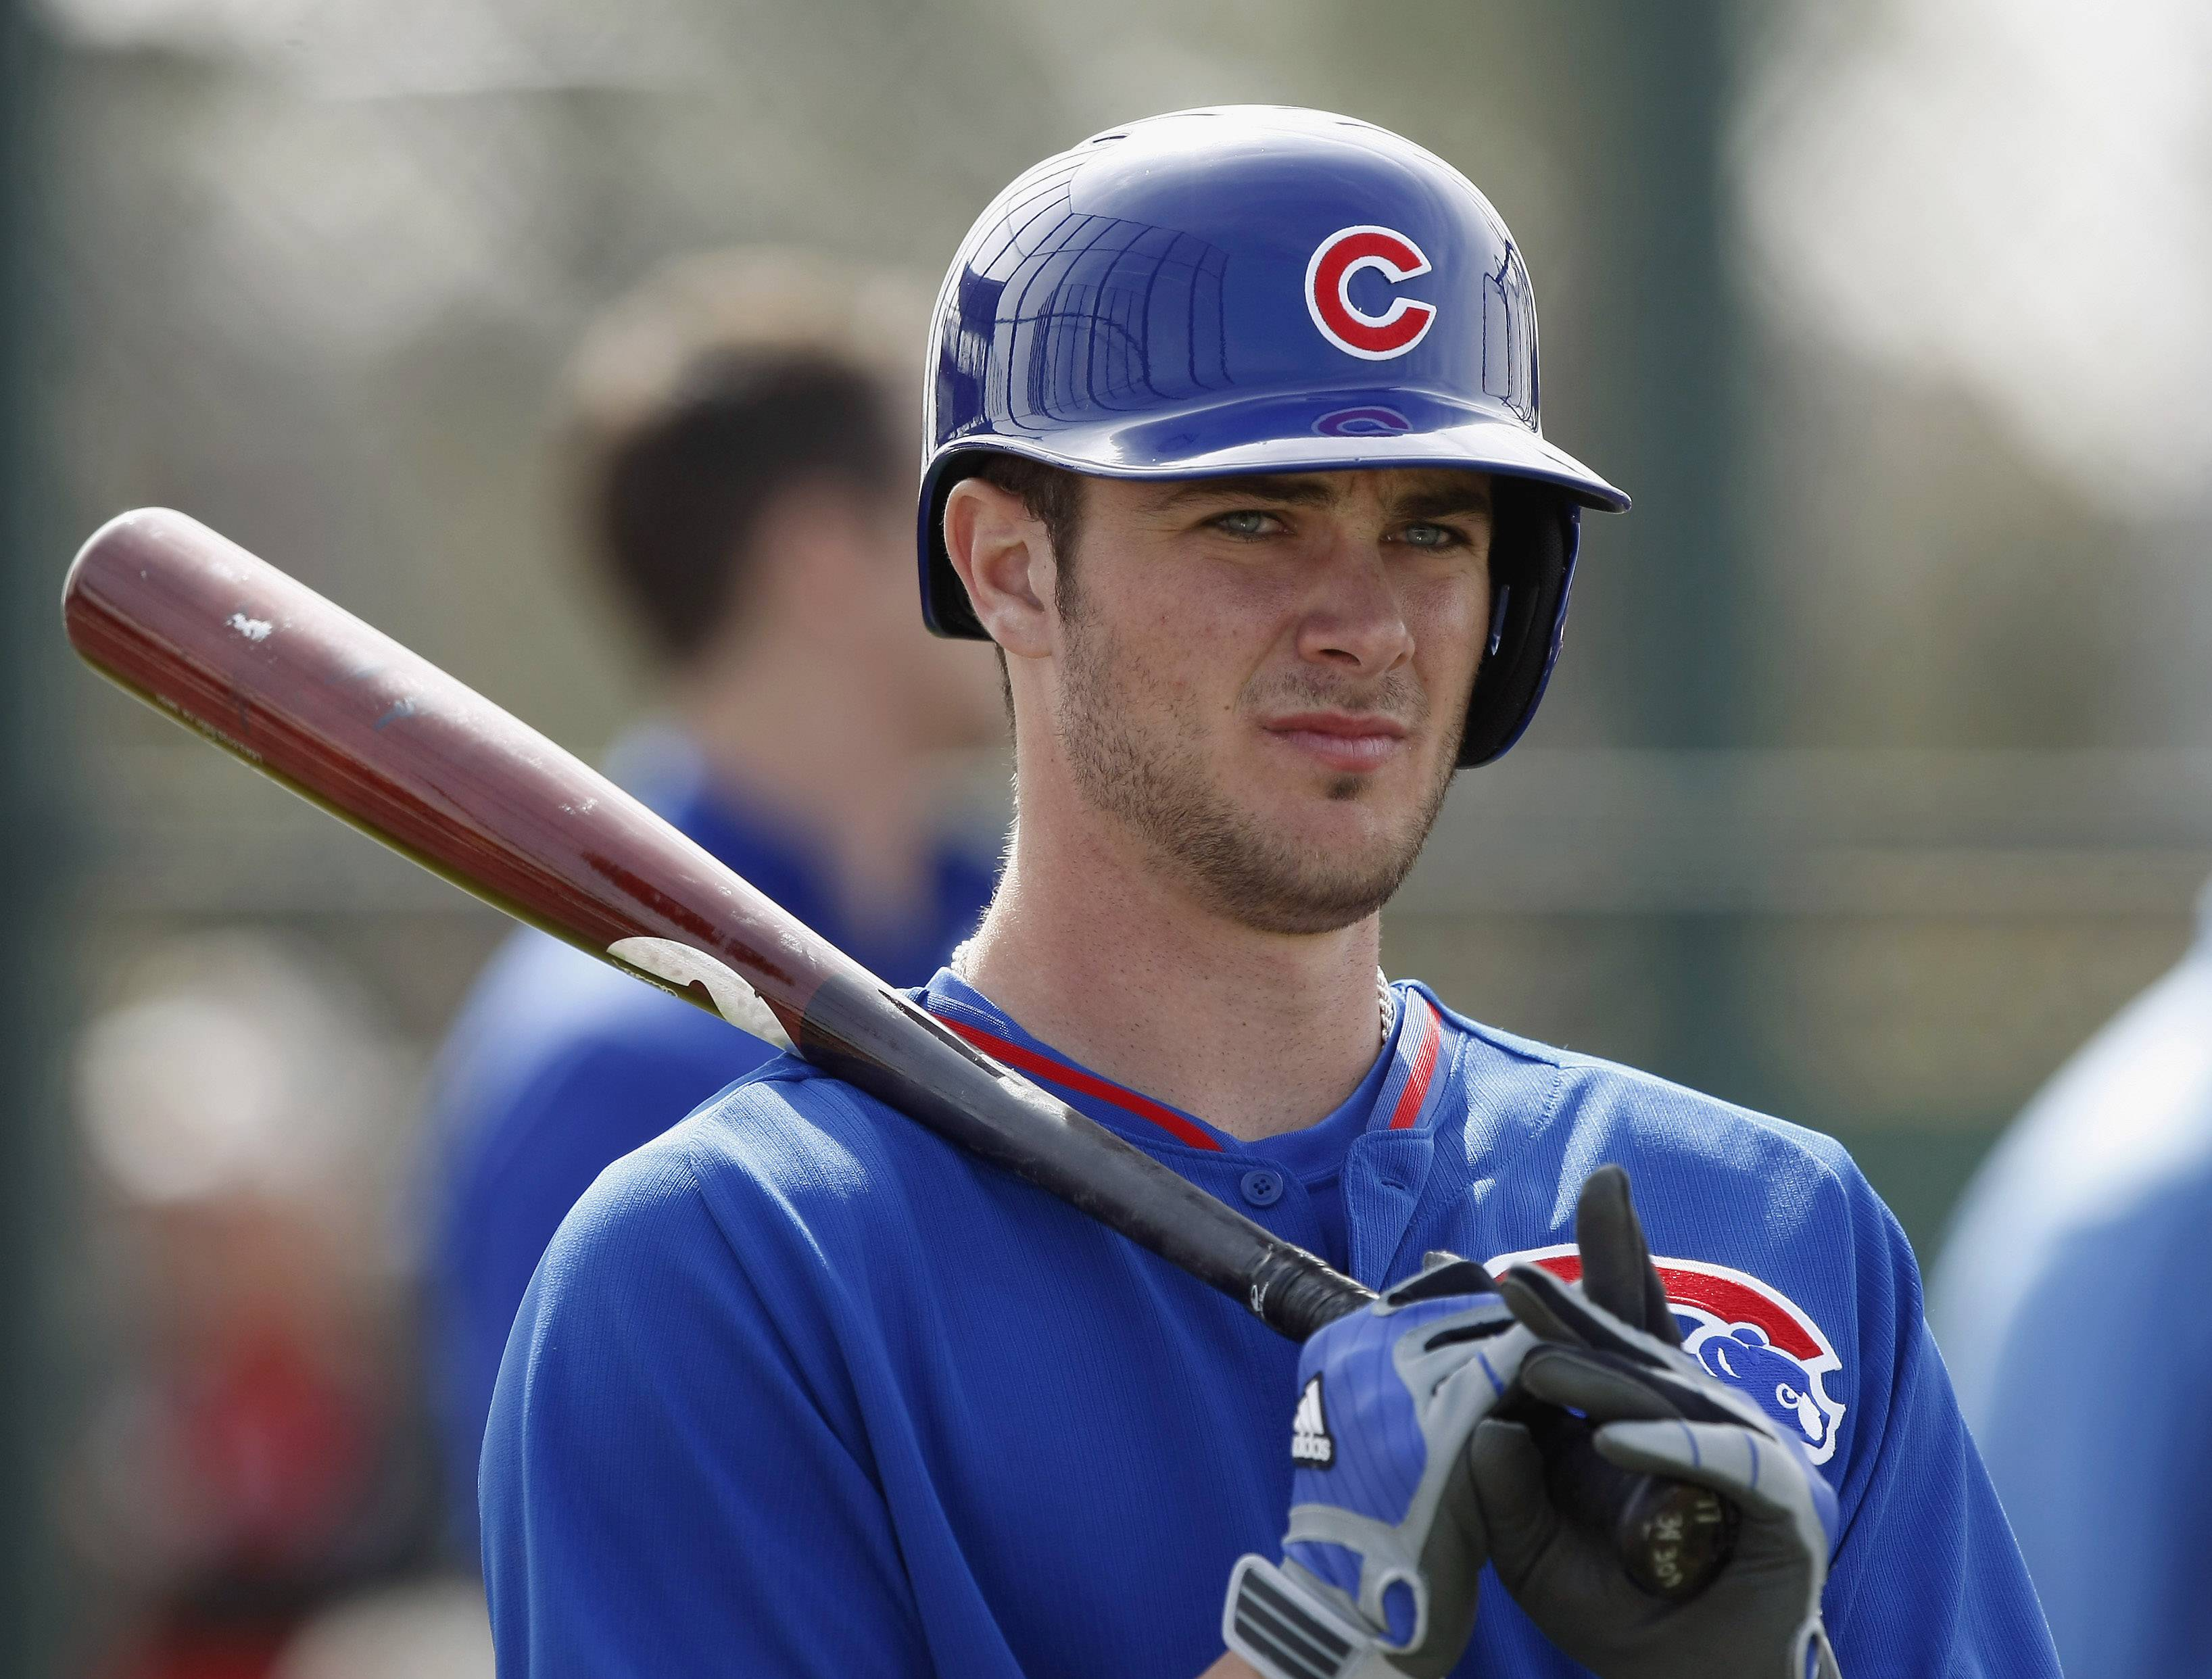 Cubs third baseman Kris Bryant is one of the team's many big-time prospects at spring camp this year.